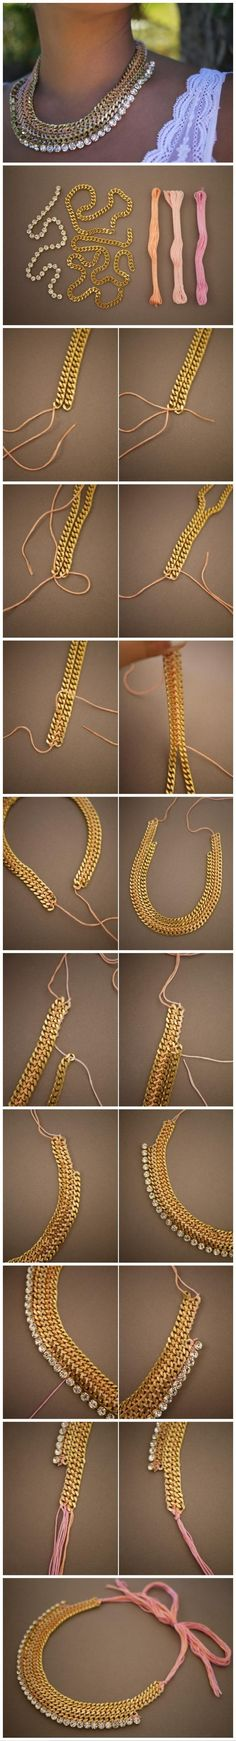 Collar tendencia 2013-2014 #DIY